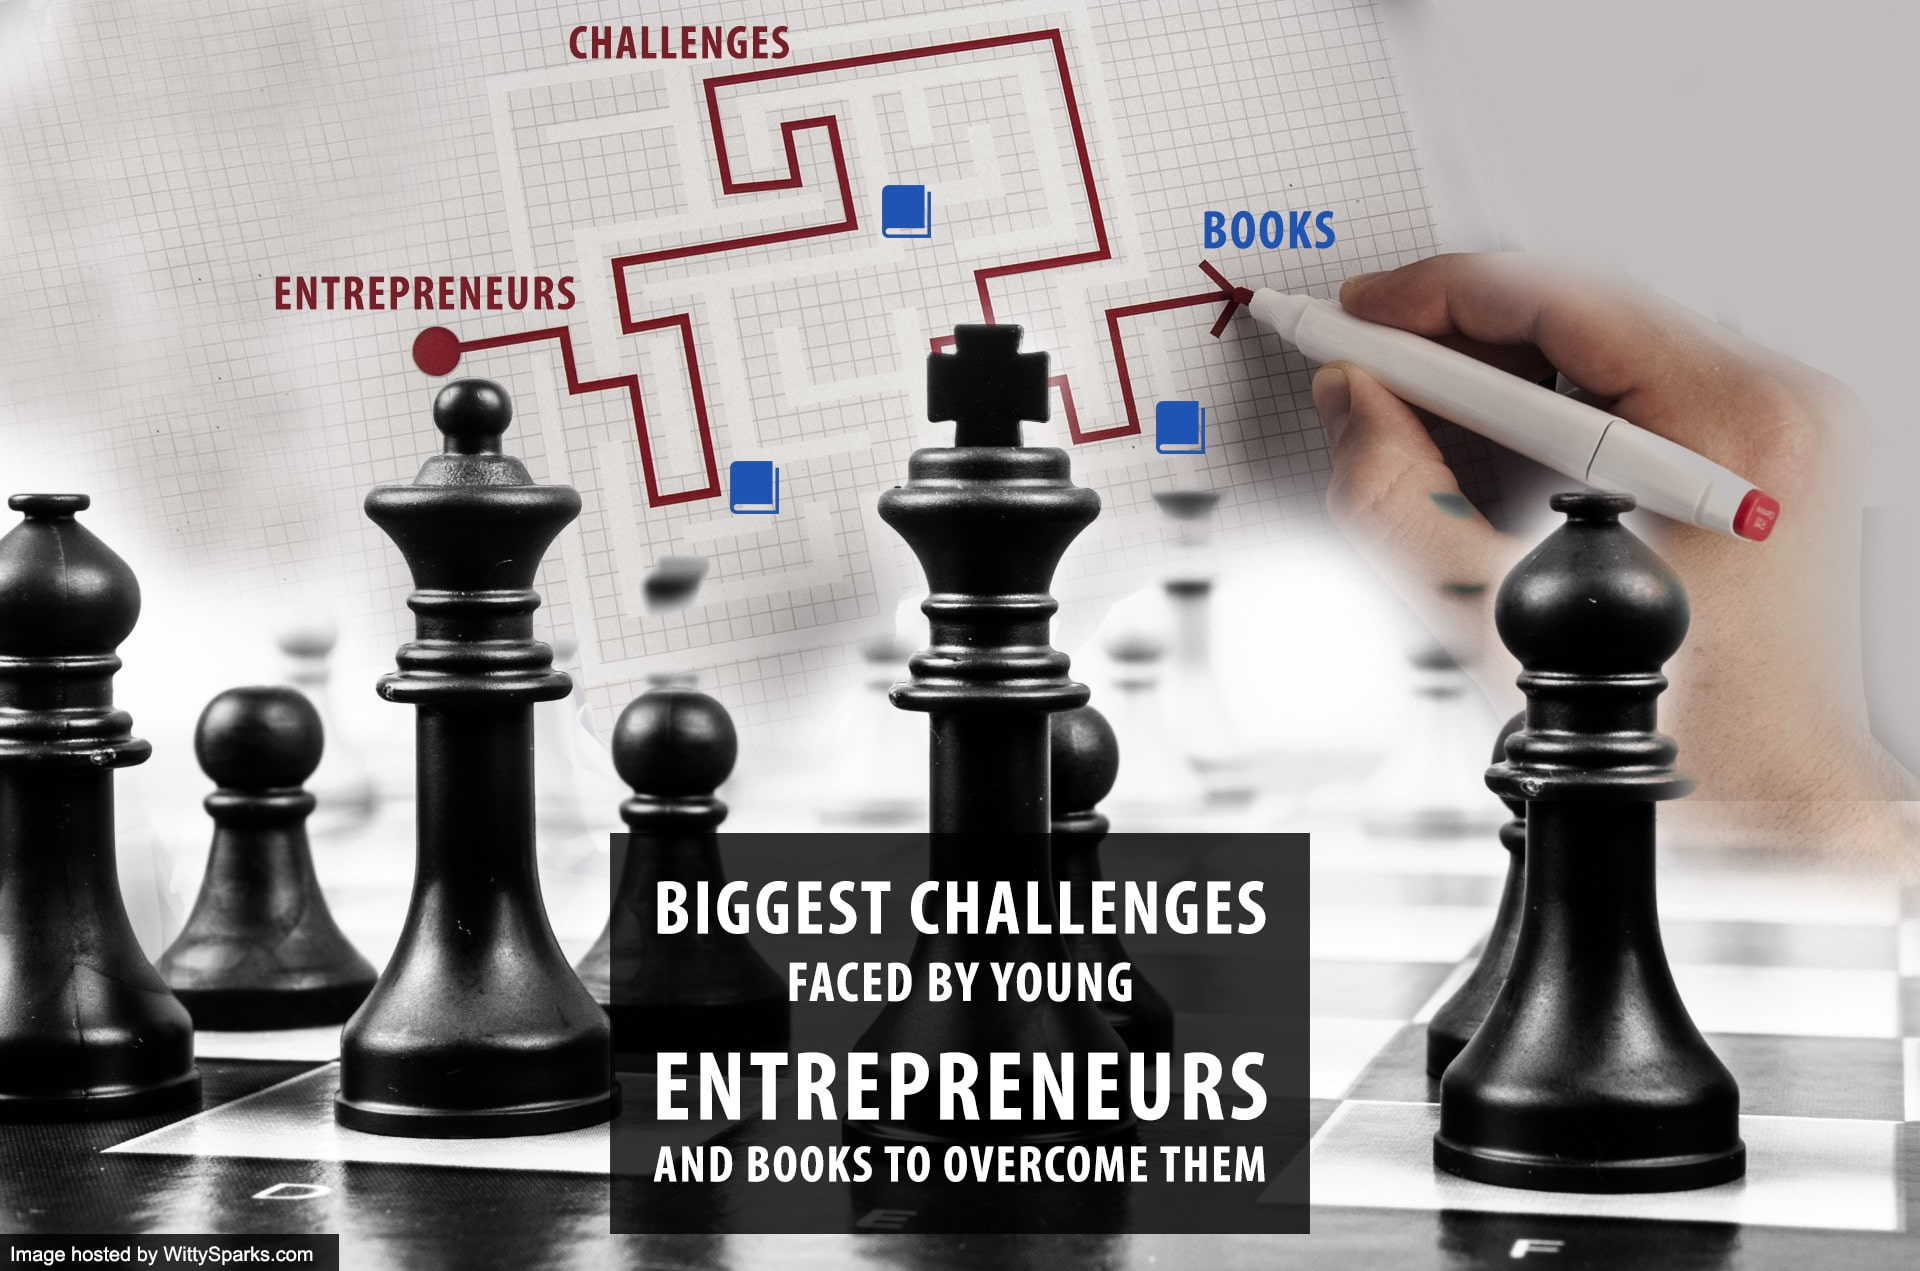 Biggest Challenges Faced by Young Entrepreneurs and Books to Overcome them